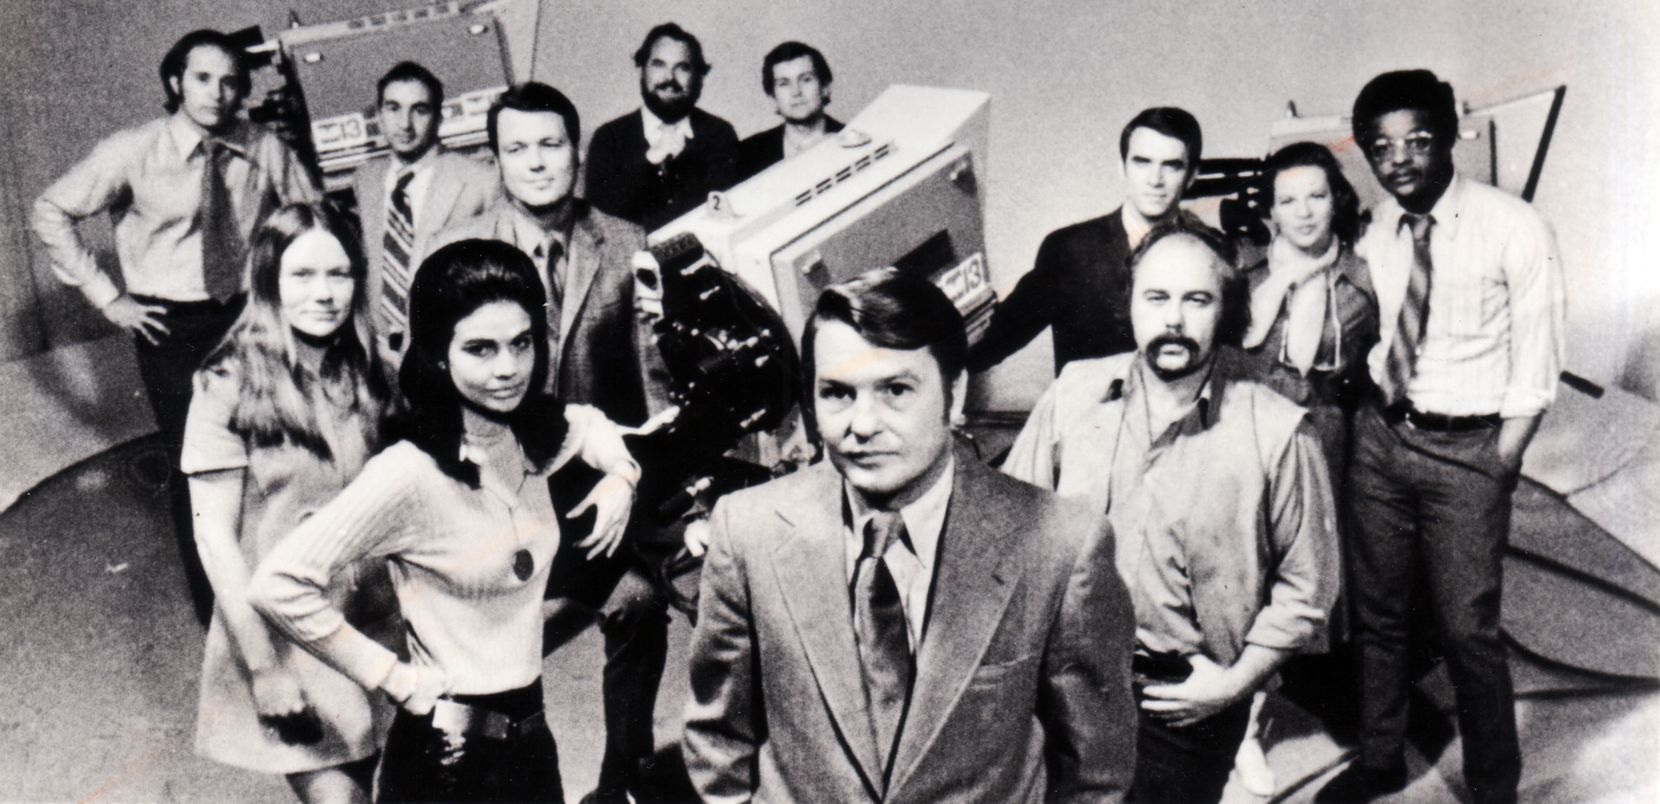 In the early 1970s, Newsroom was what KERA was best known for. The award-winning news program featured Jim Lehrer (center) as its editor. Other reporters on the controversial program included Lee Cullum Clark (arm on camera); Bill Porterfield (behind Lehrer); Pat Reed and John Tackett (behind Clark); Darwin Payne, Patsy Swank and Greg Roberson (from left behind Porterfield); Mike Ritchey, Harlan Cohen, Ron Devillier and Max Woodfin (from left at rear).